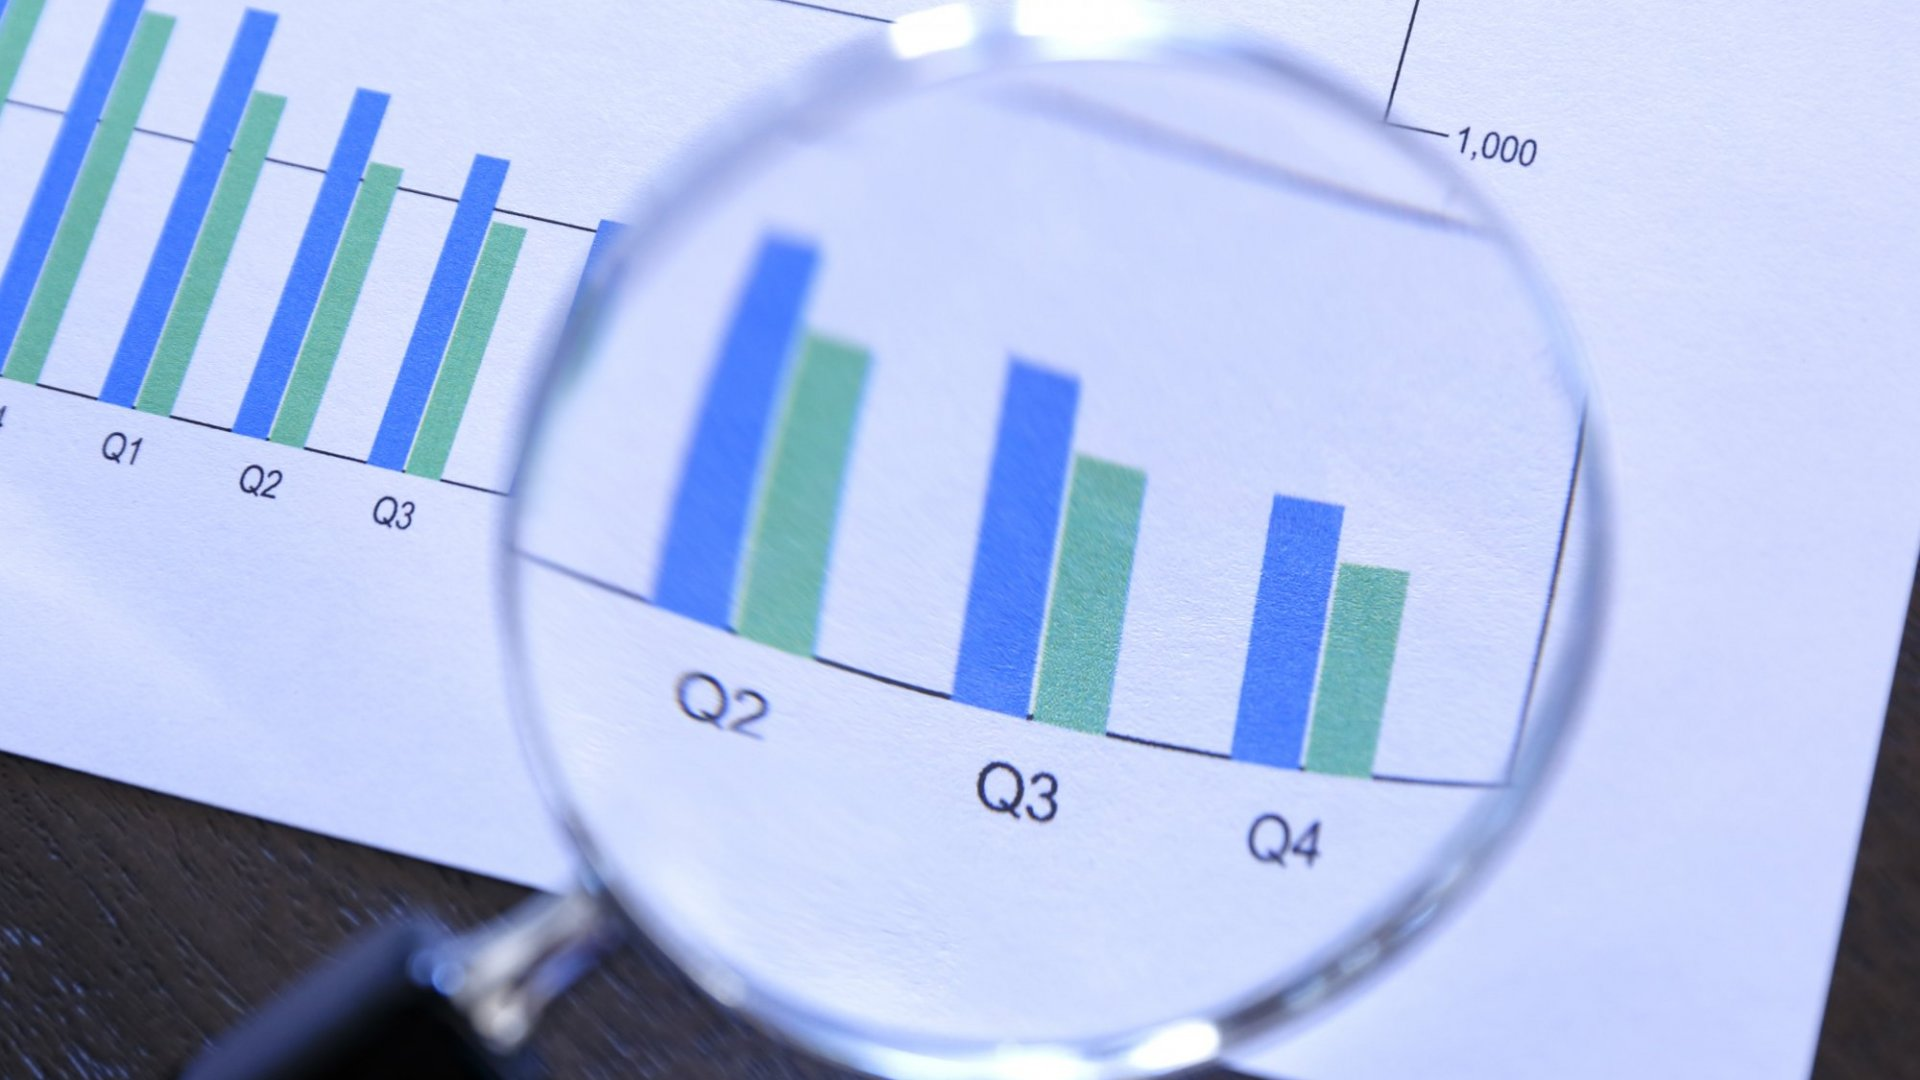 Are Quarterly Business Goals an Outdated Practice?